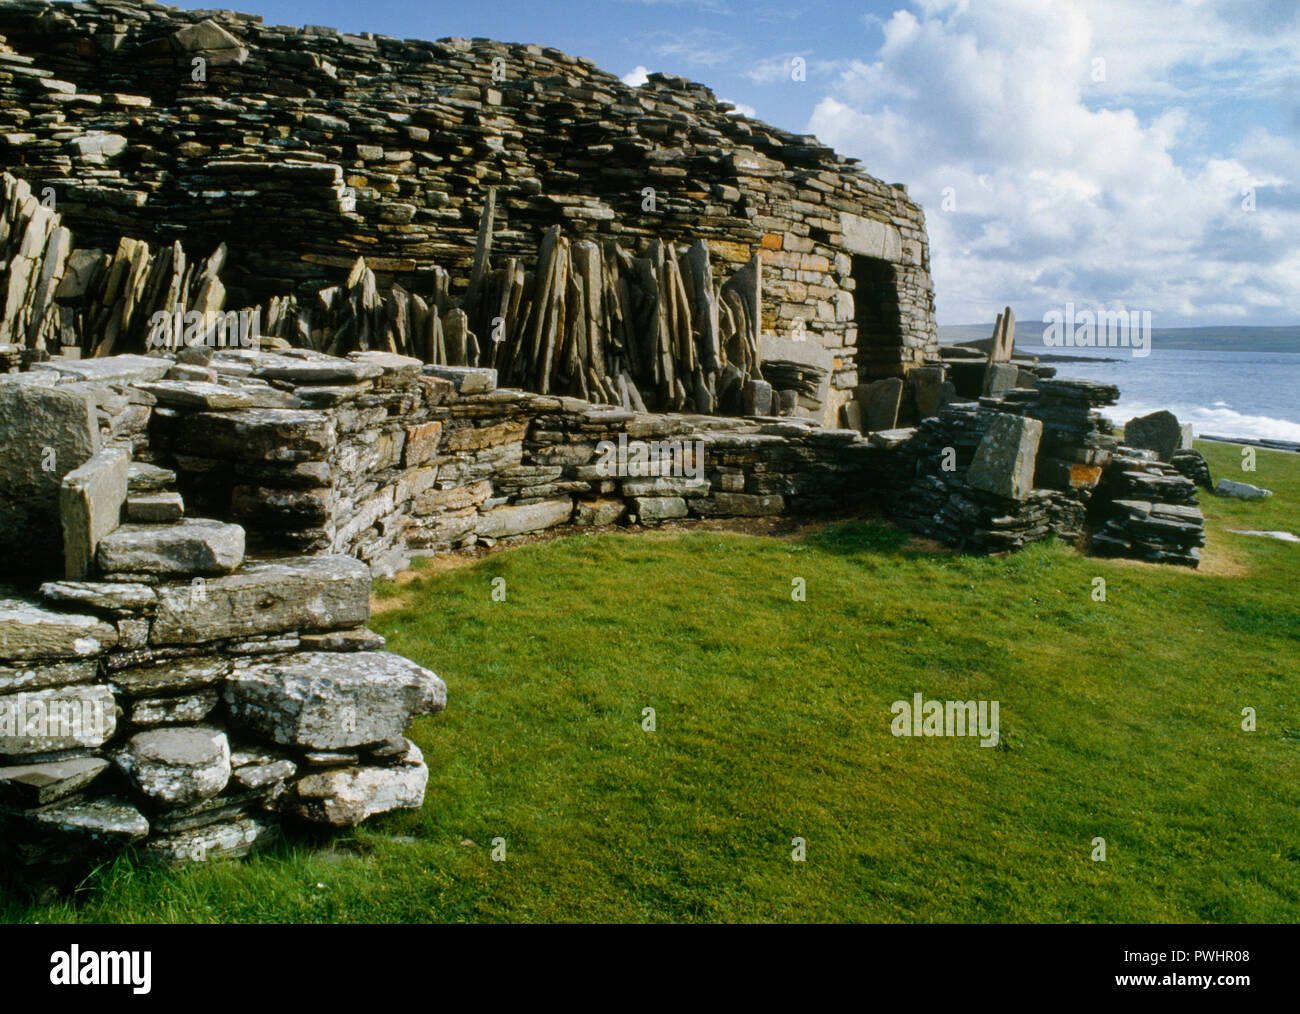 View SSE of the entrance to Midhowe Iron Age broch on the SW coast of Rousay island overlooking Eynhallow Sound & Orkney Mainland, Scotland, UK. - Stock Image